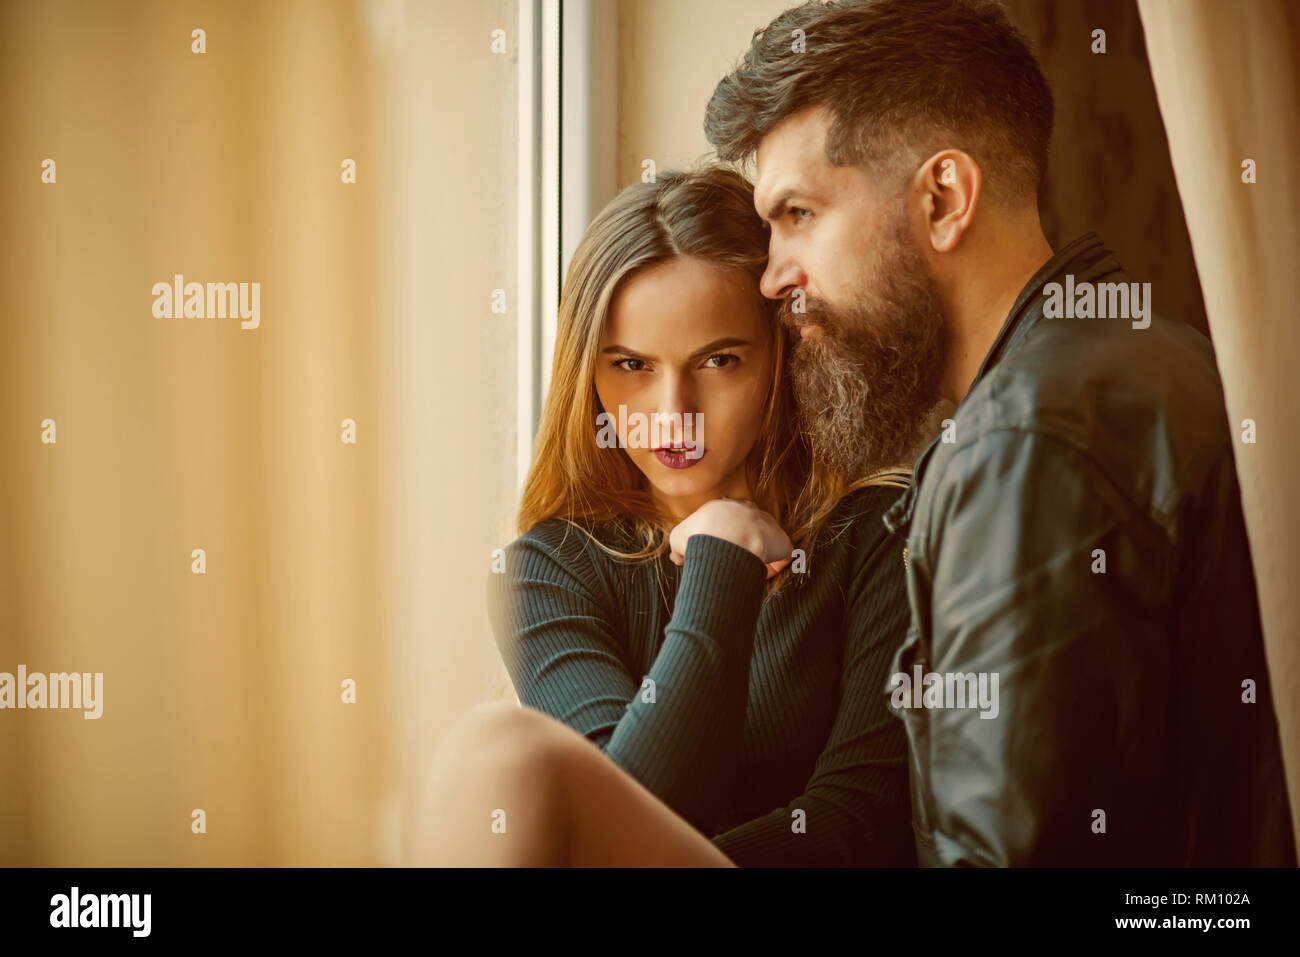 Couple in love spend nice time at home. Couple of man and woman together - Stock Image